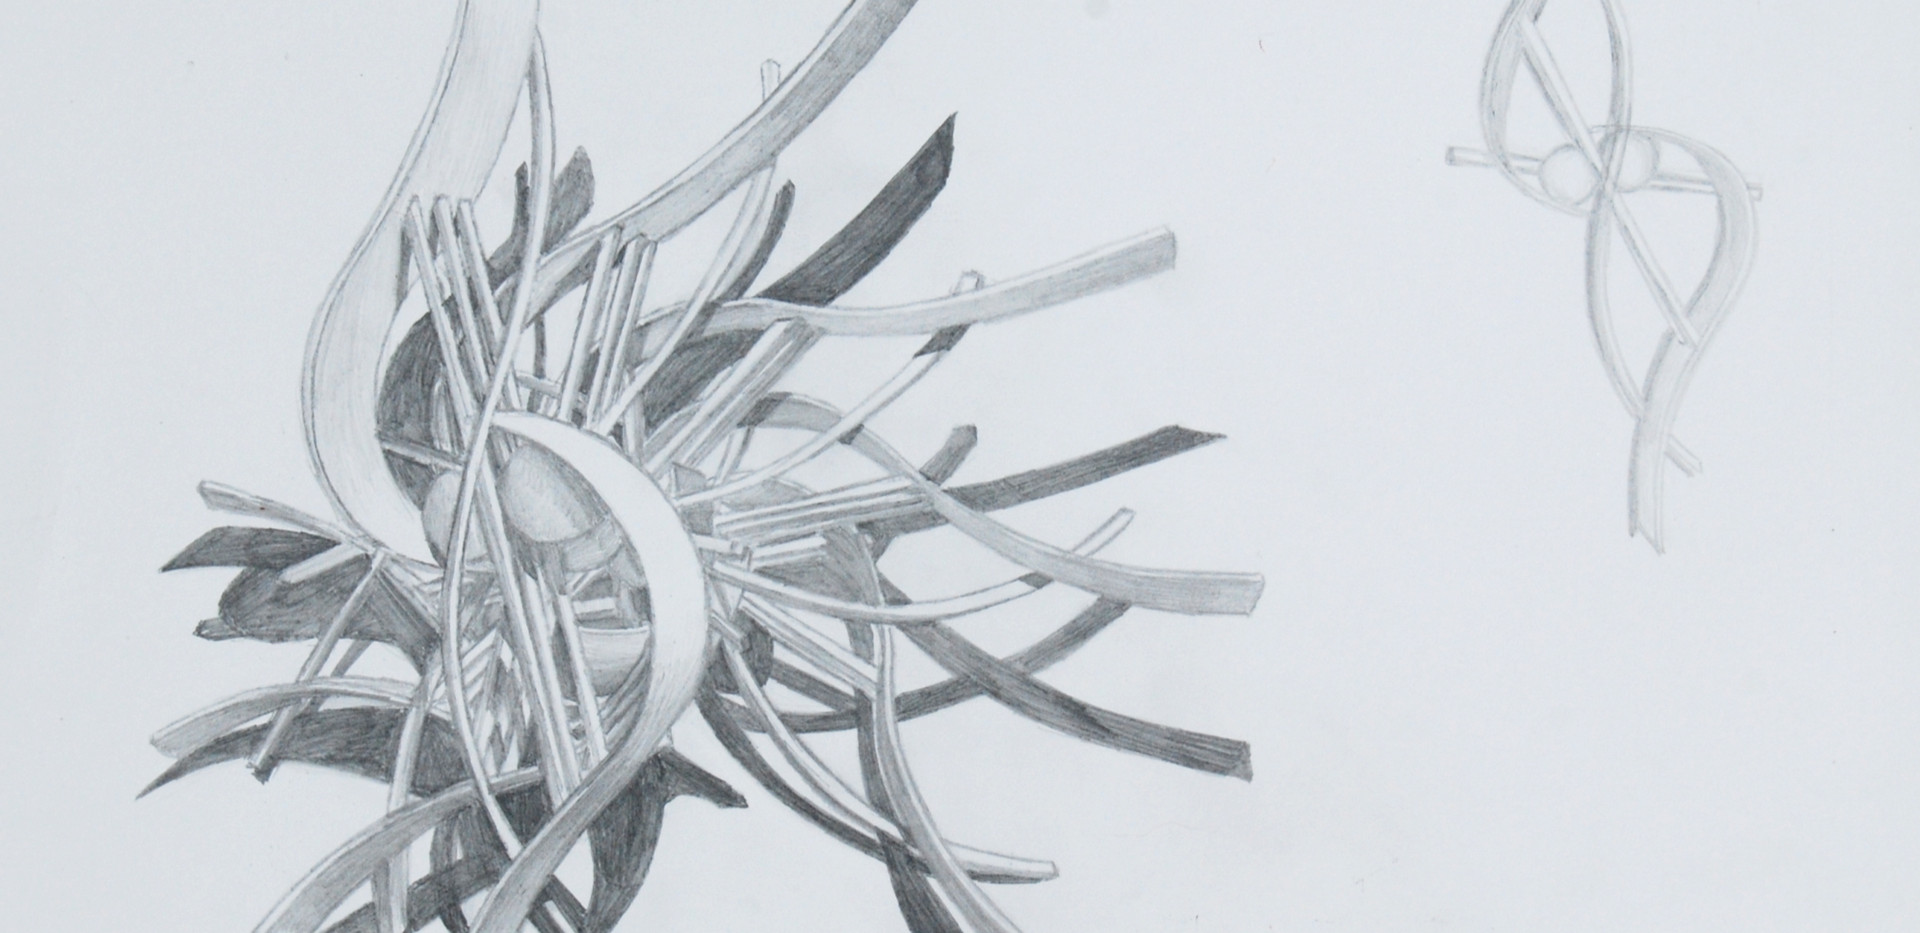 Abstract Sculpture Sketch